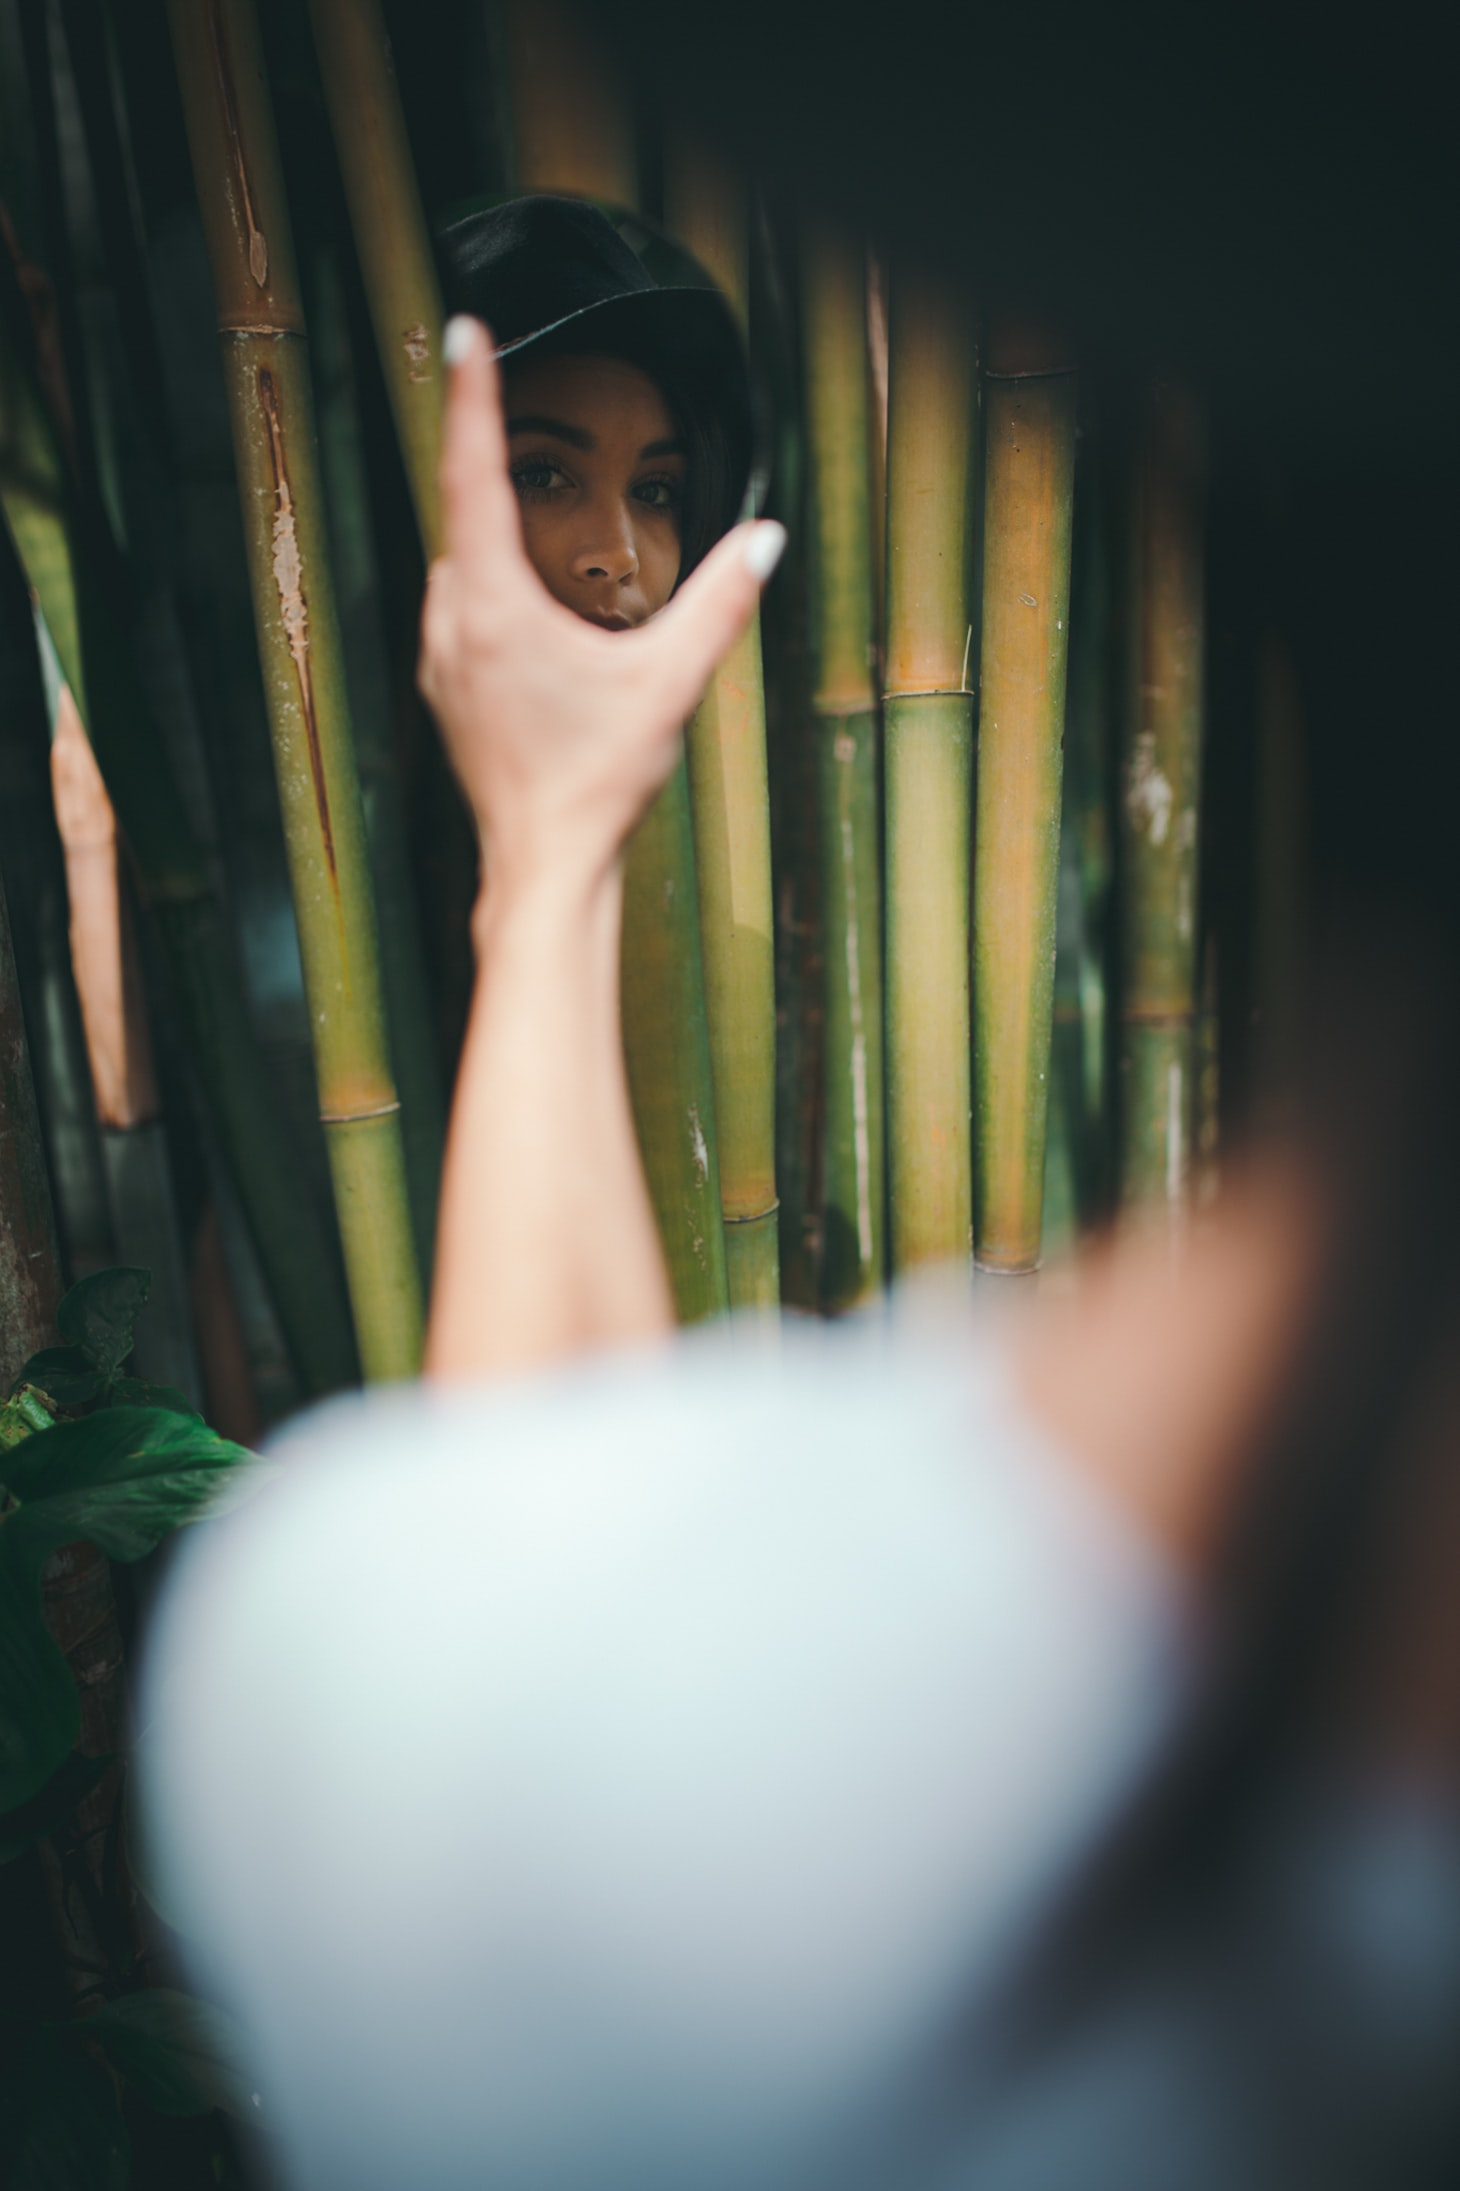 SELF-IMAGE ✵ How to See the Real You